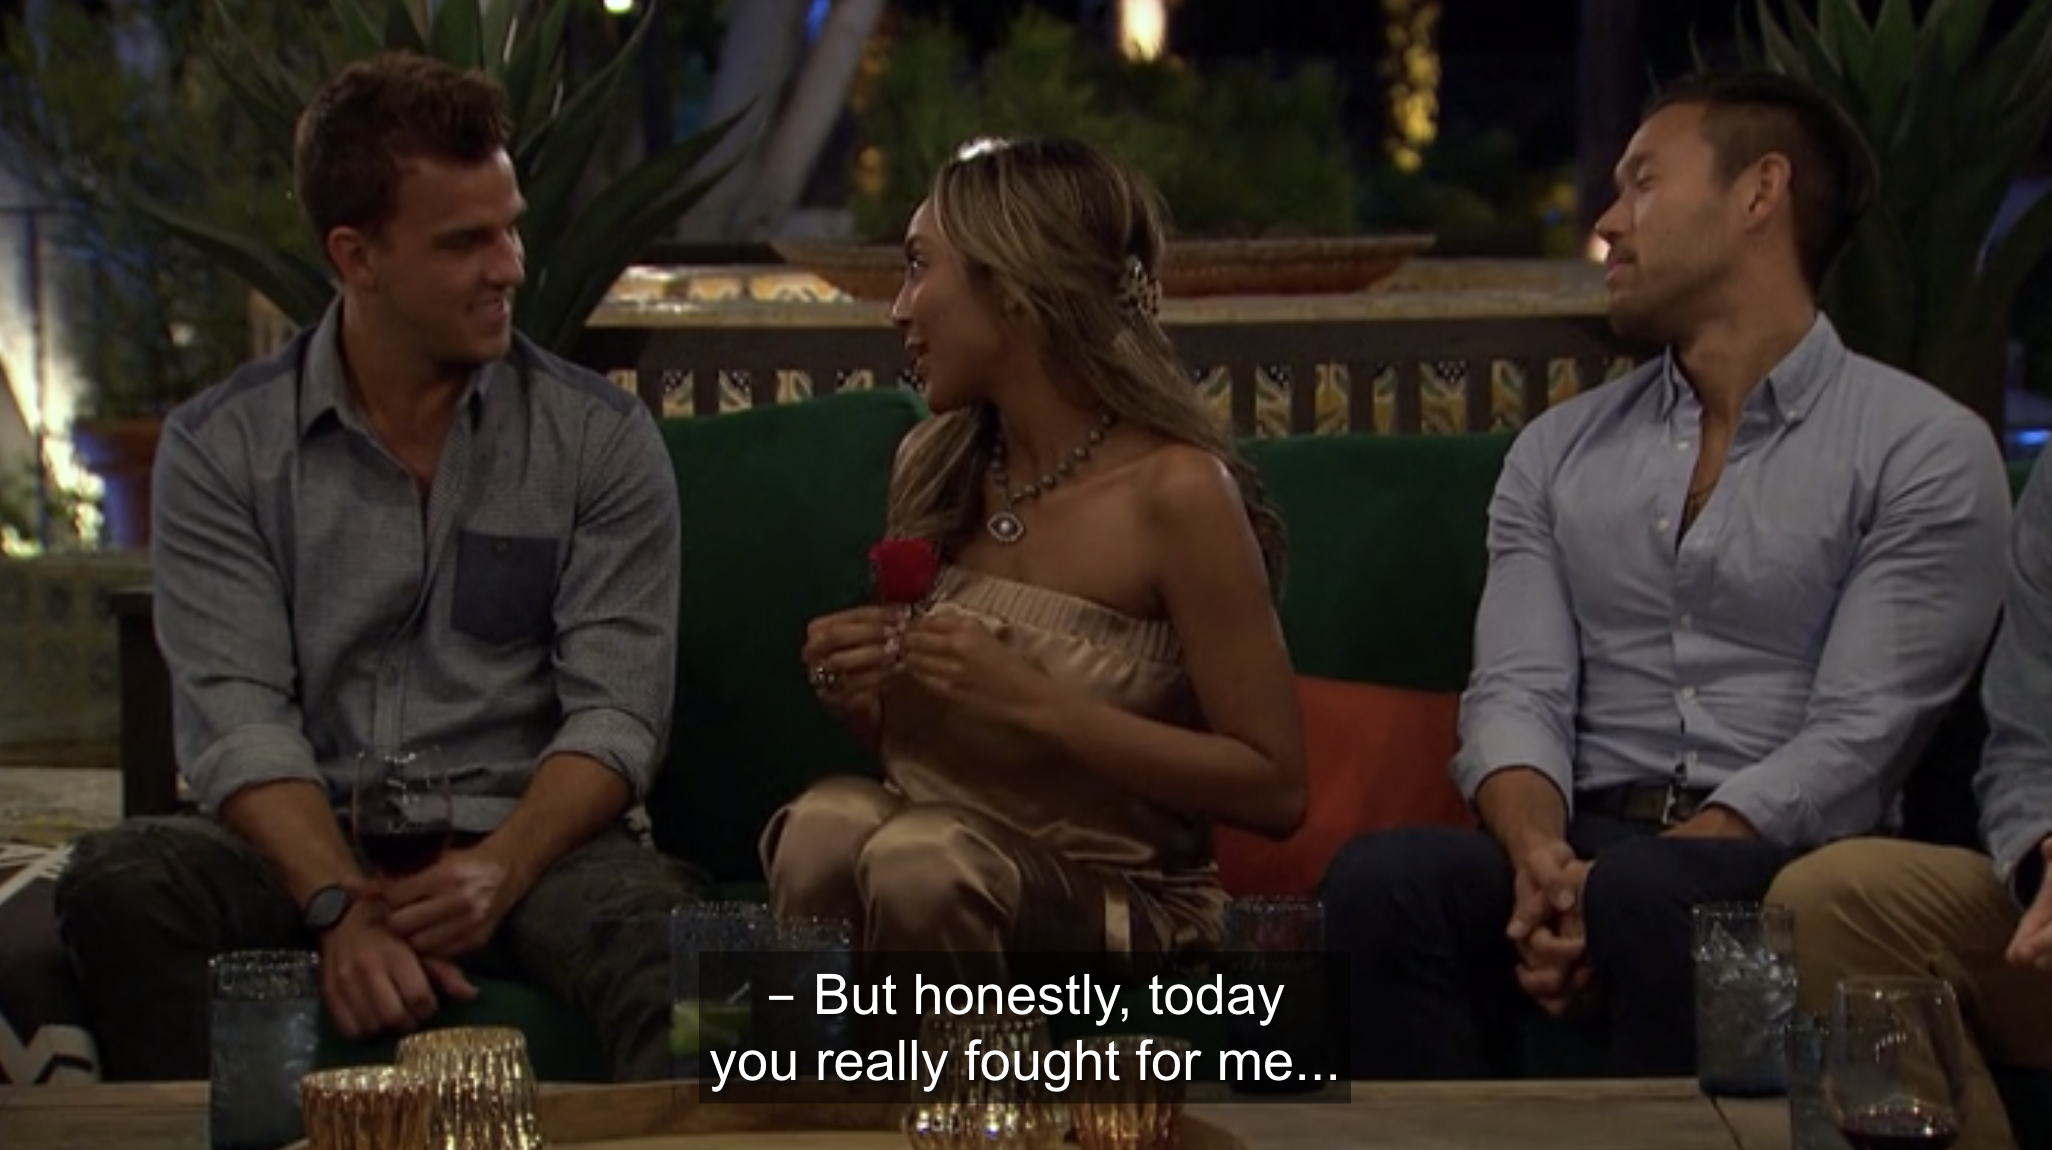 Tayshia presenting Noah with the date night rose